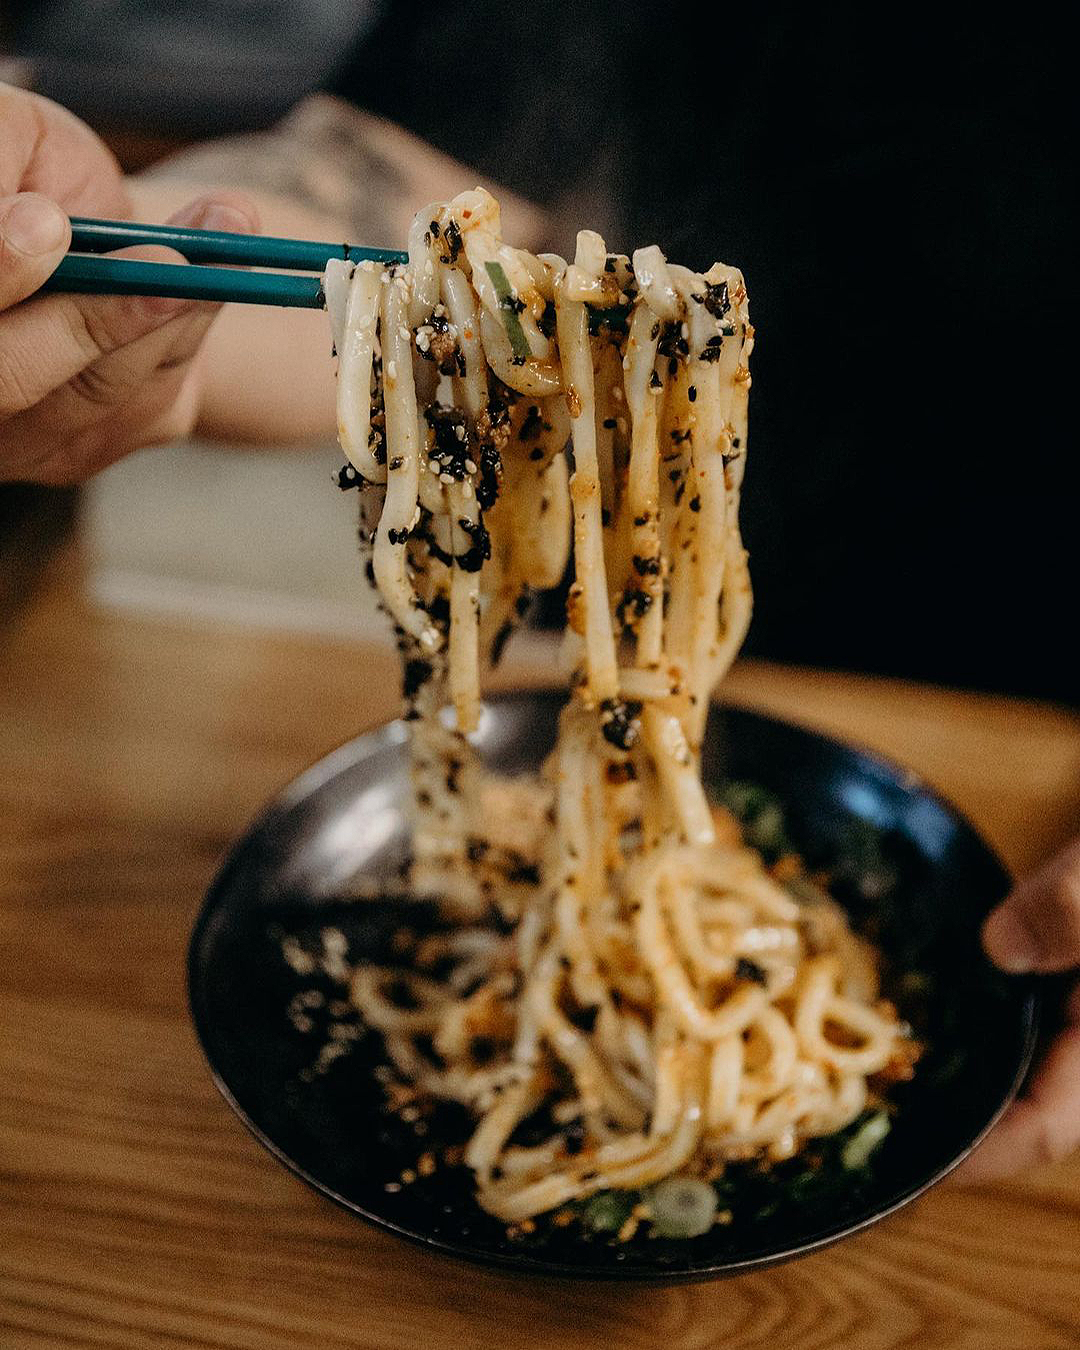 A noodle dish looks incredibly moreish held between chopsticks.